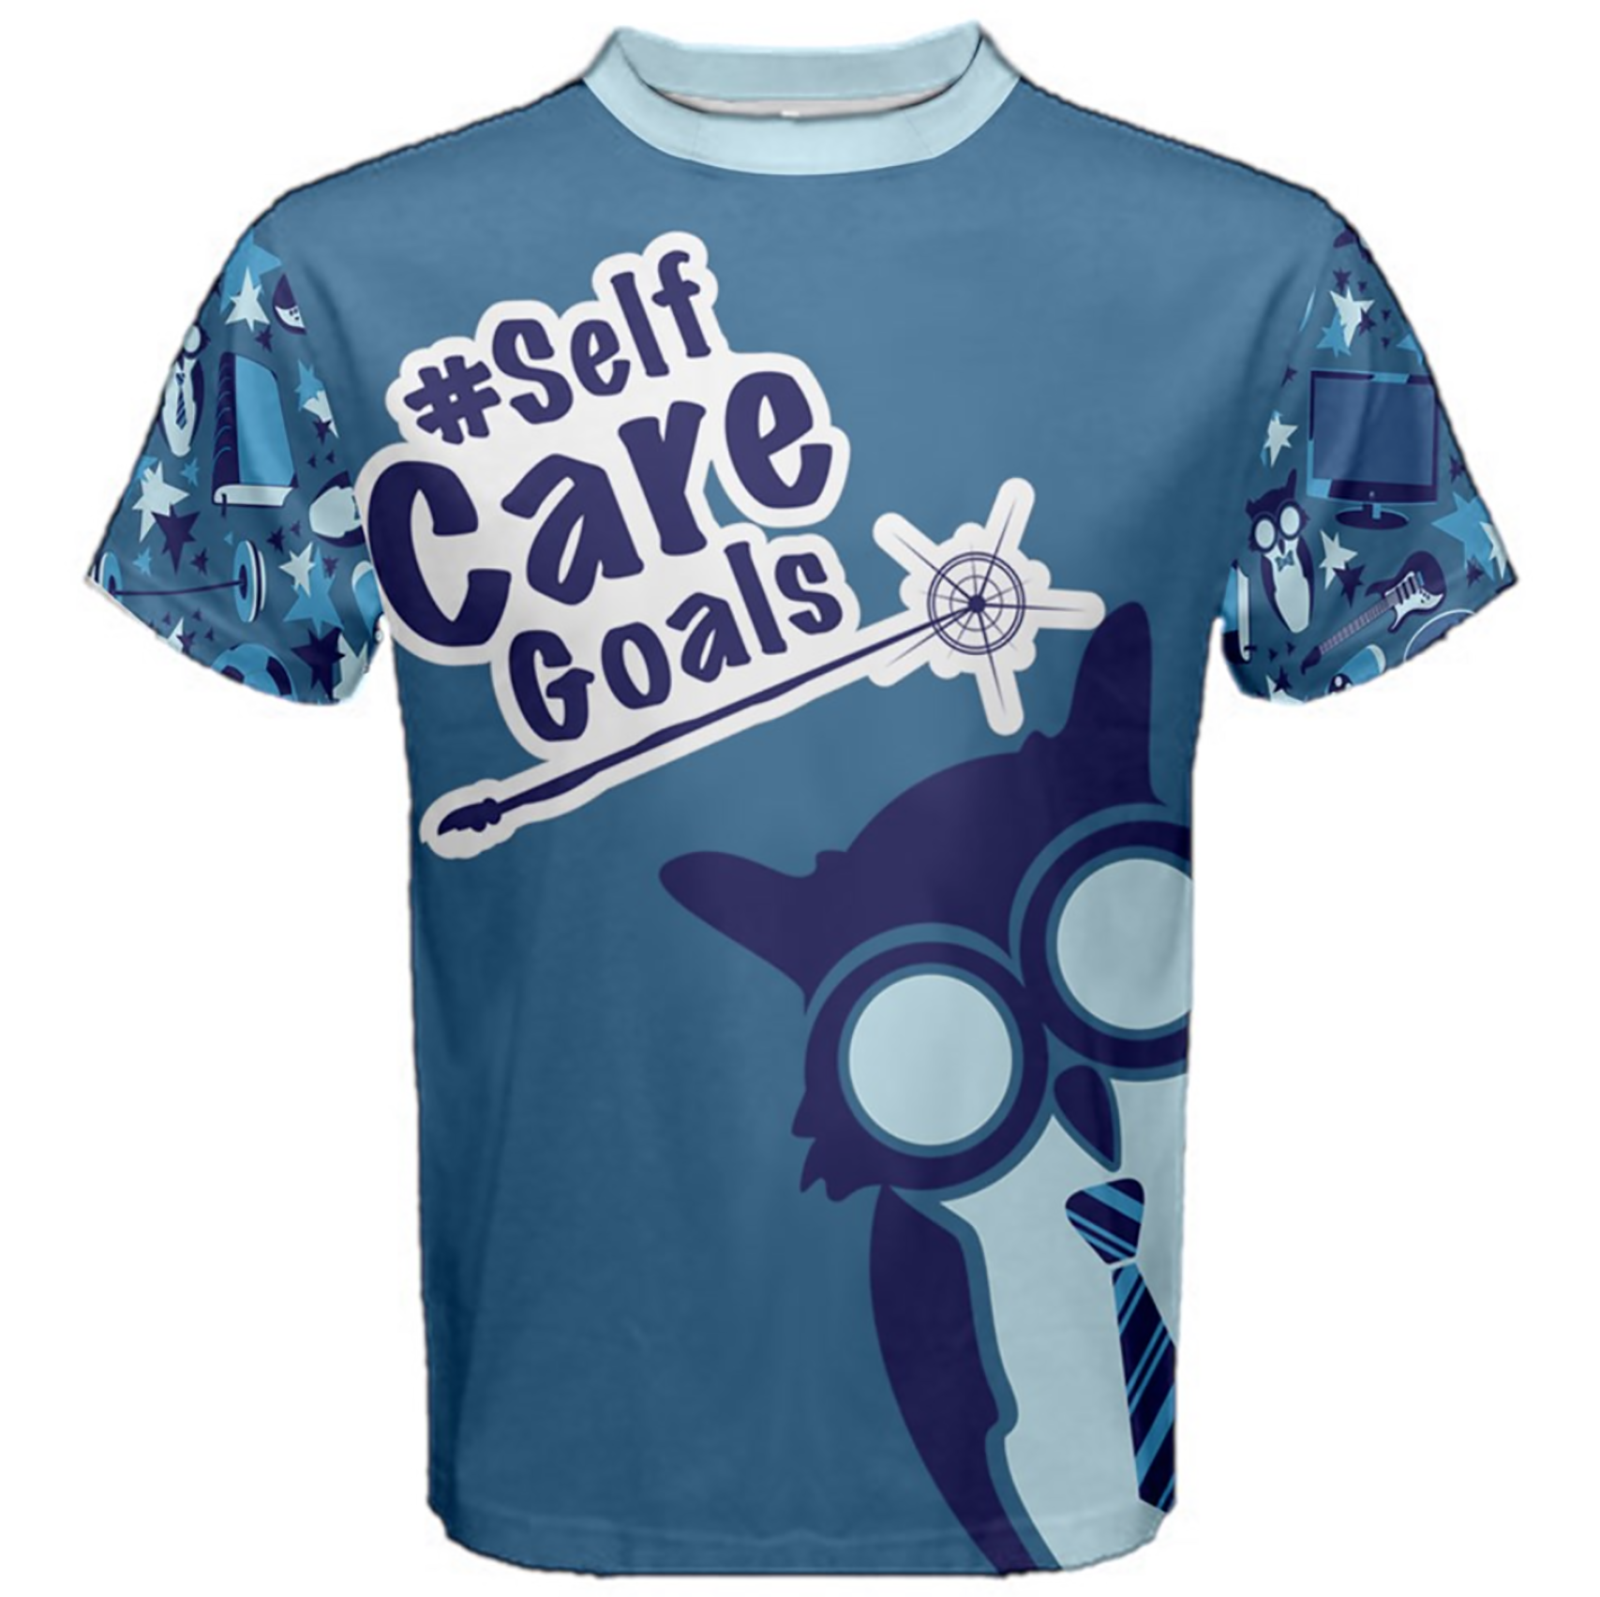 Self-Care Men's Cotton Tee (Blue Solid Background)